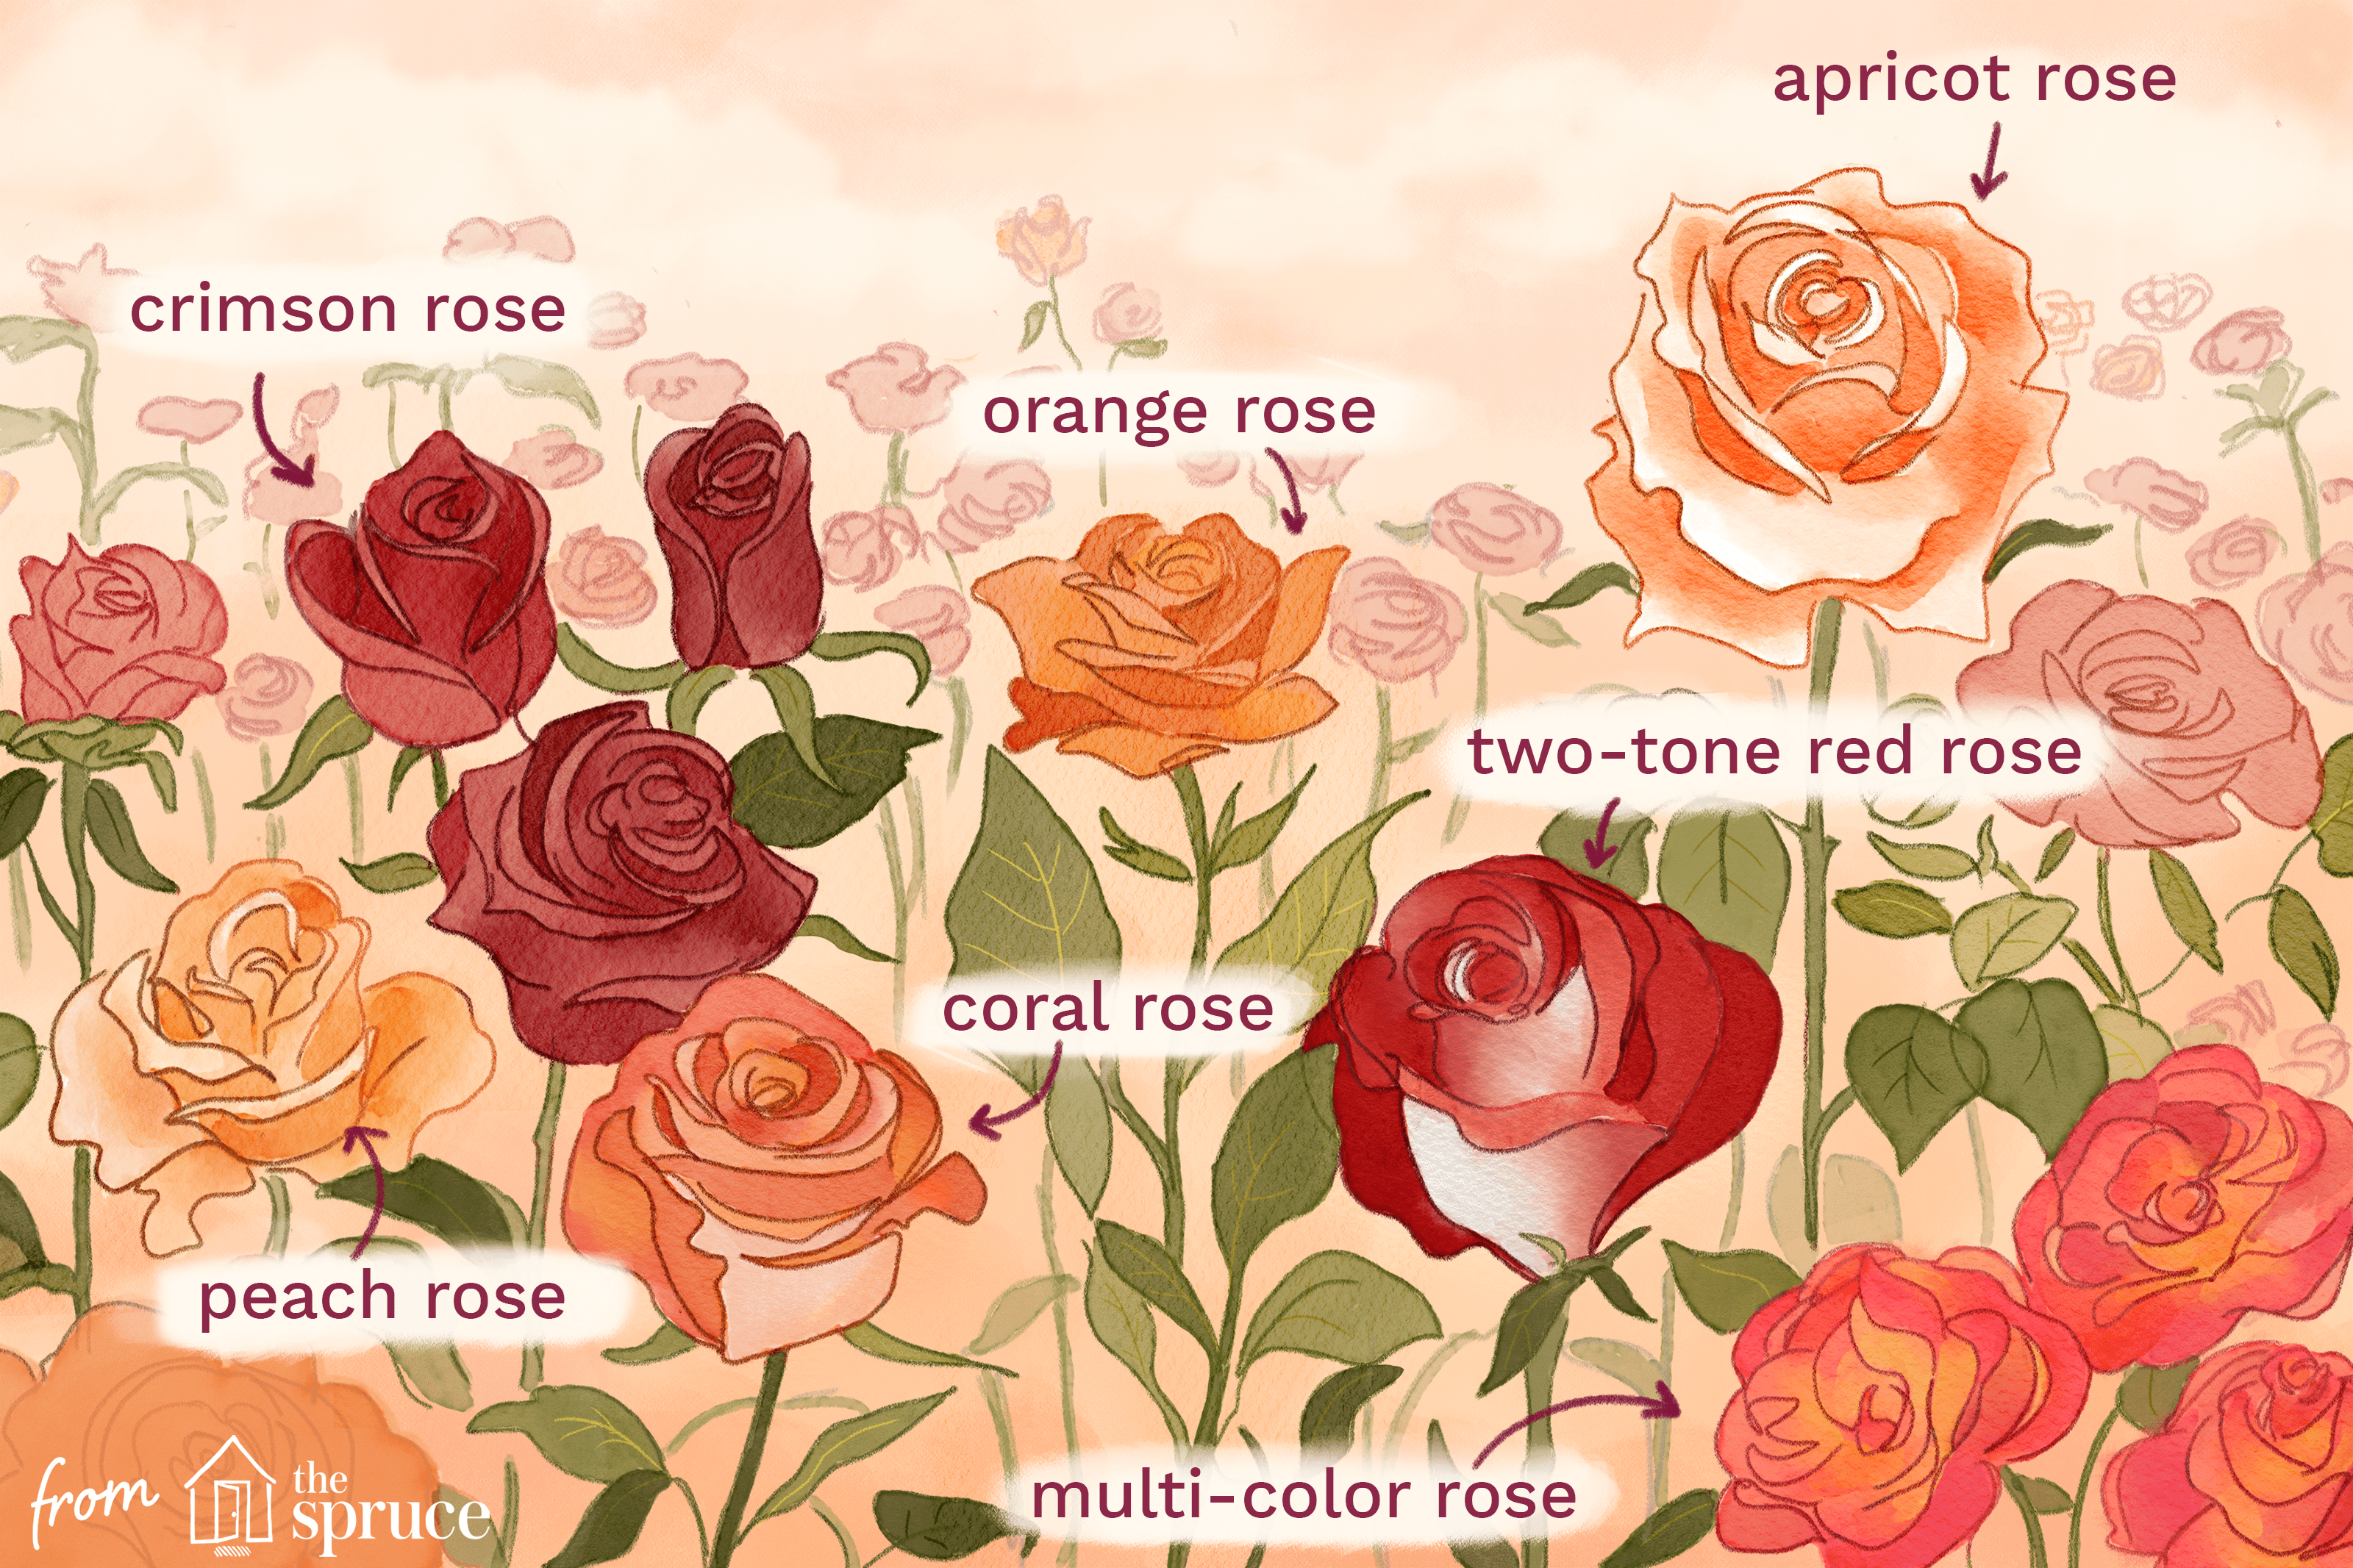 15 Varieties Of Roses To Consider For Your Garden